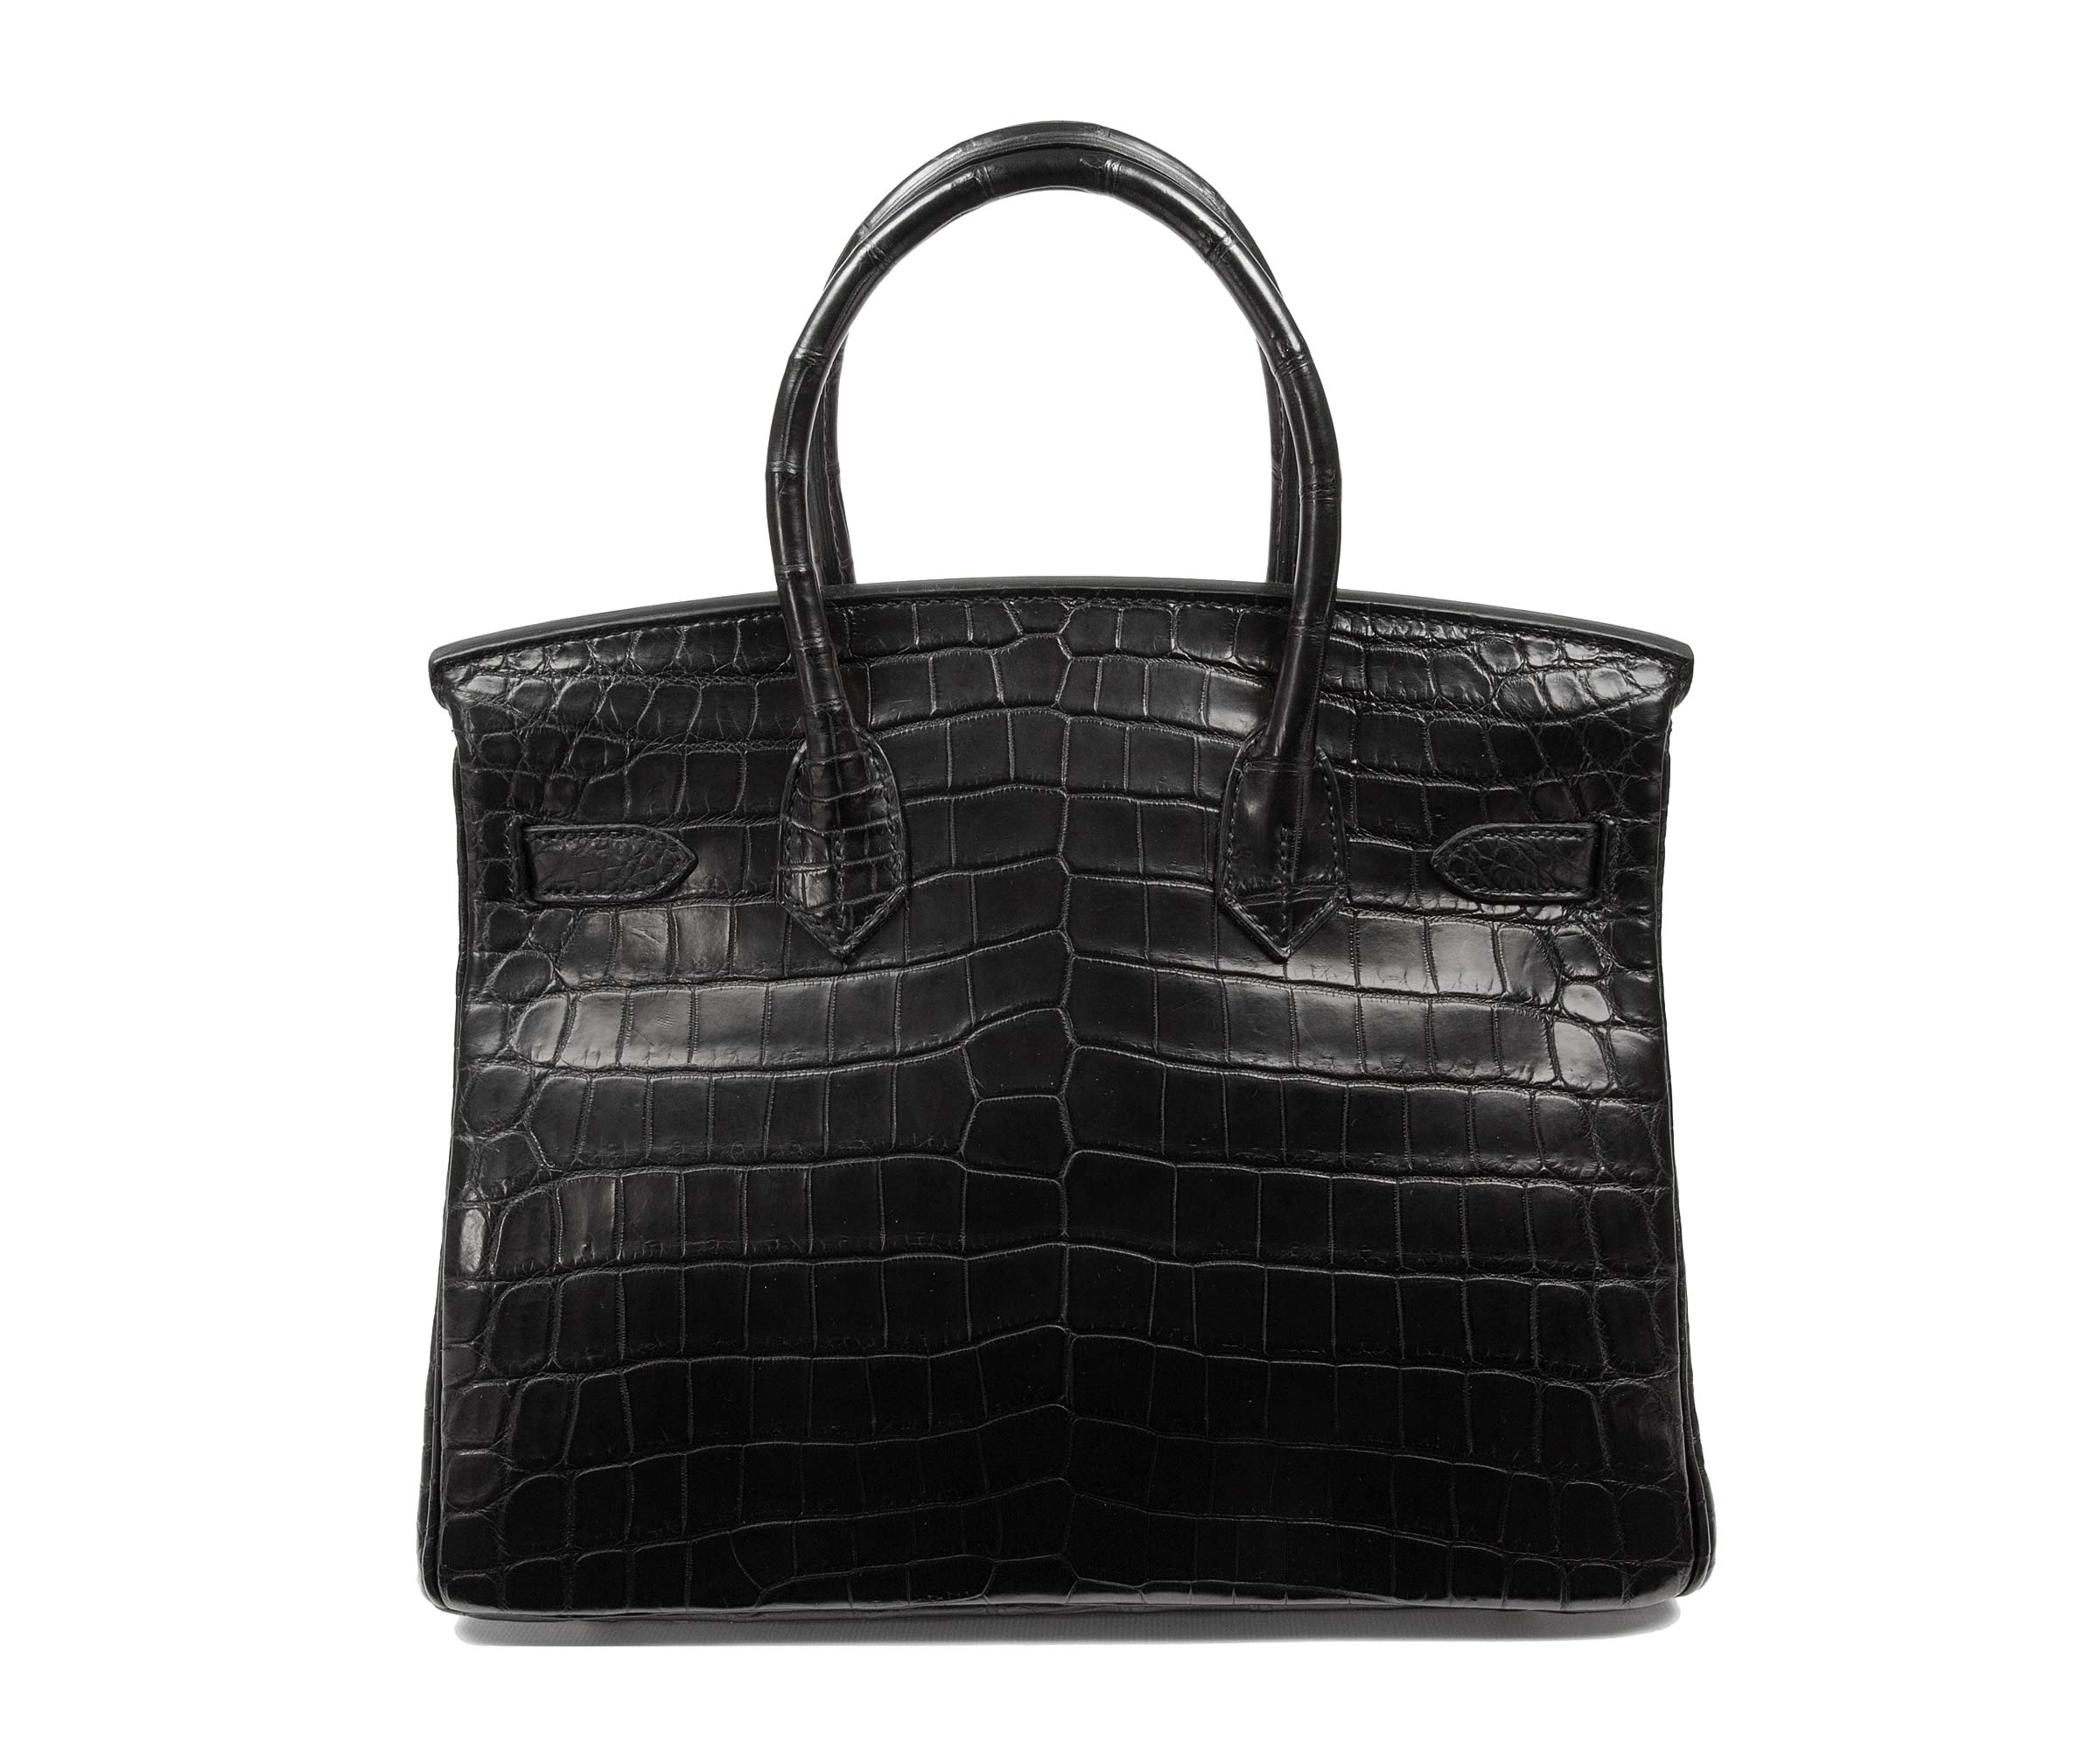 Hermes Birkin Black 30cm, Matt Nilo Croc with Gold Hardware